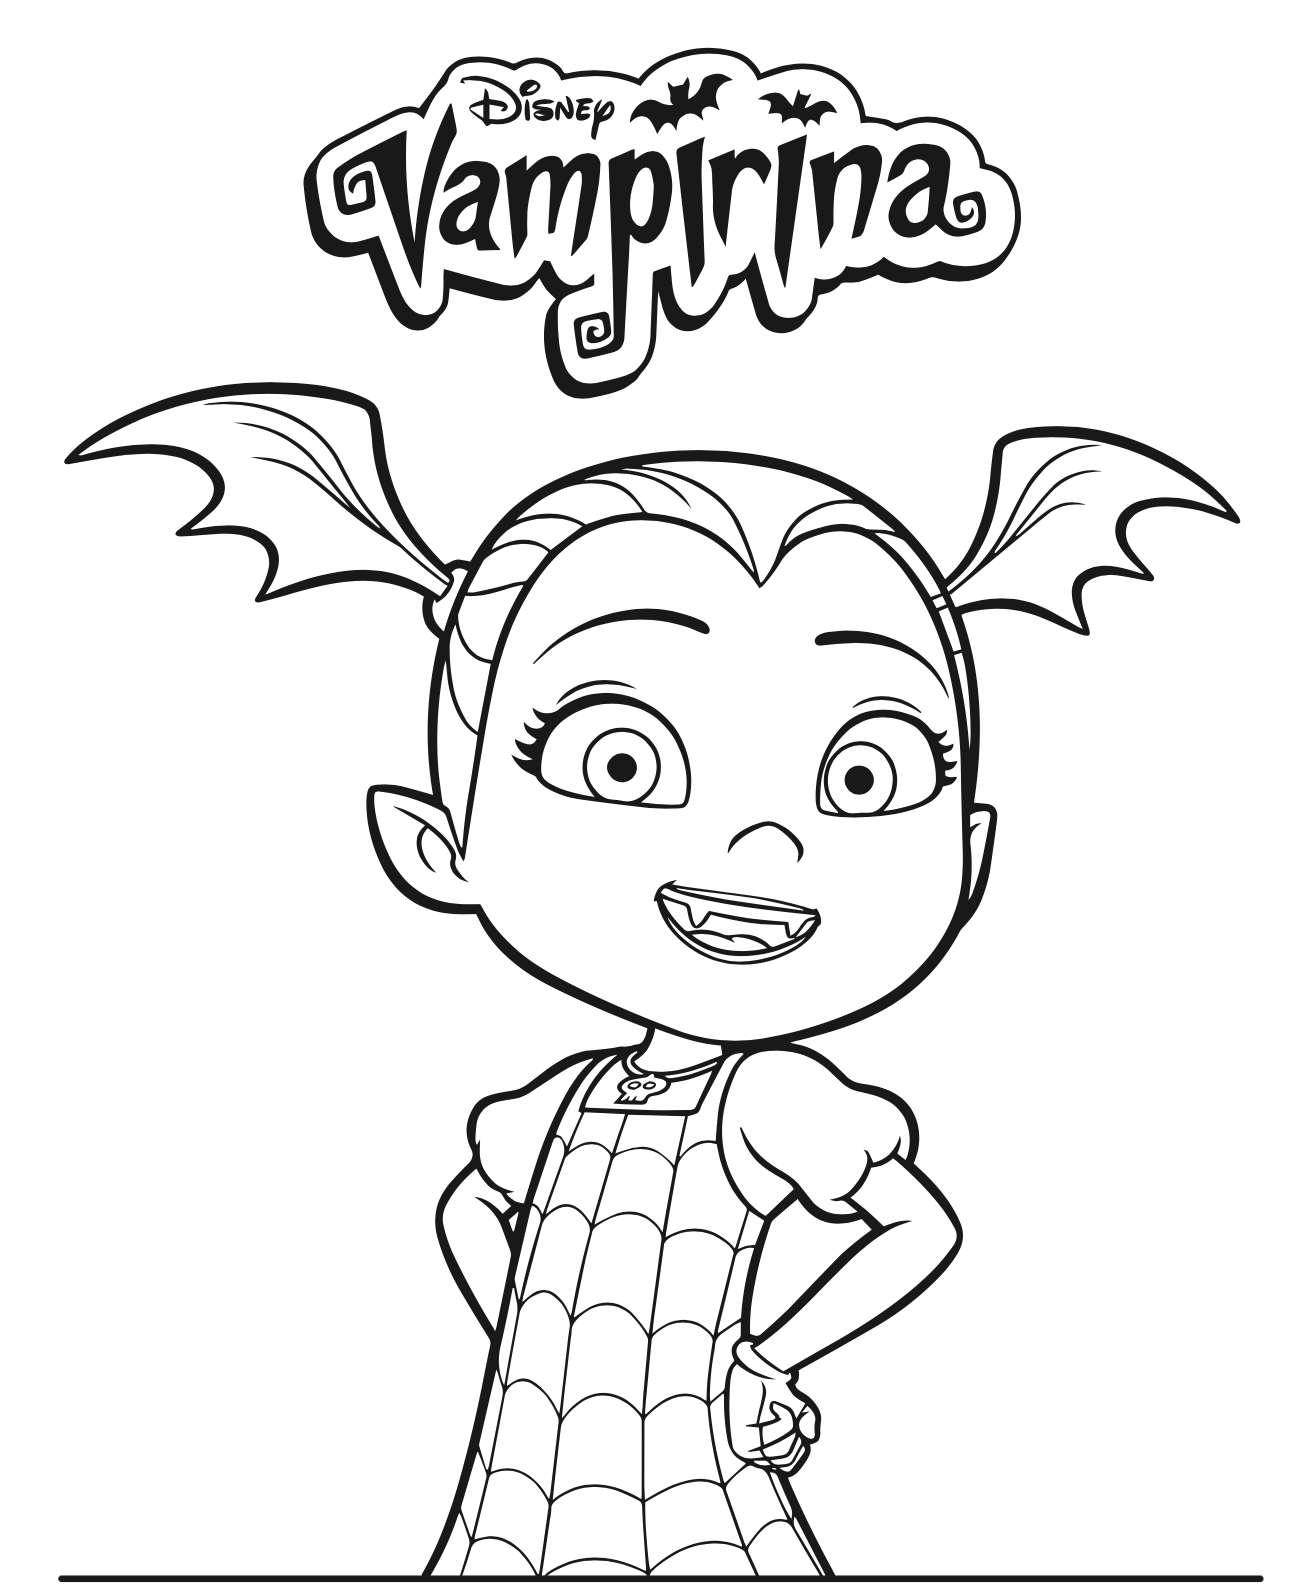 Disney Junior Vampirina Coloring Pages + DVD Giveaway | Disney jr ...